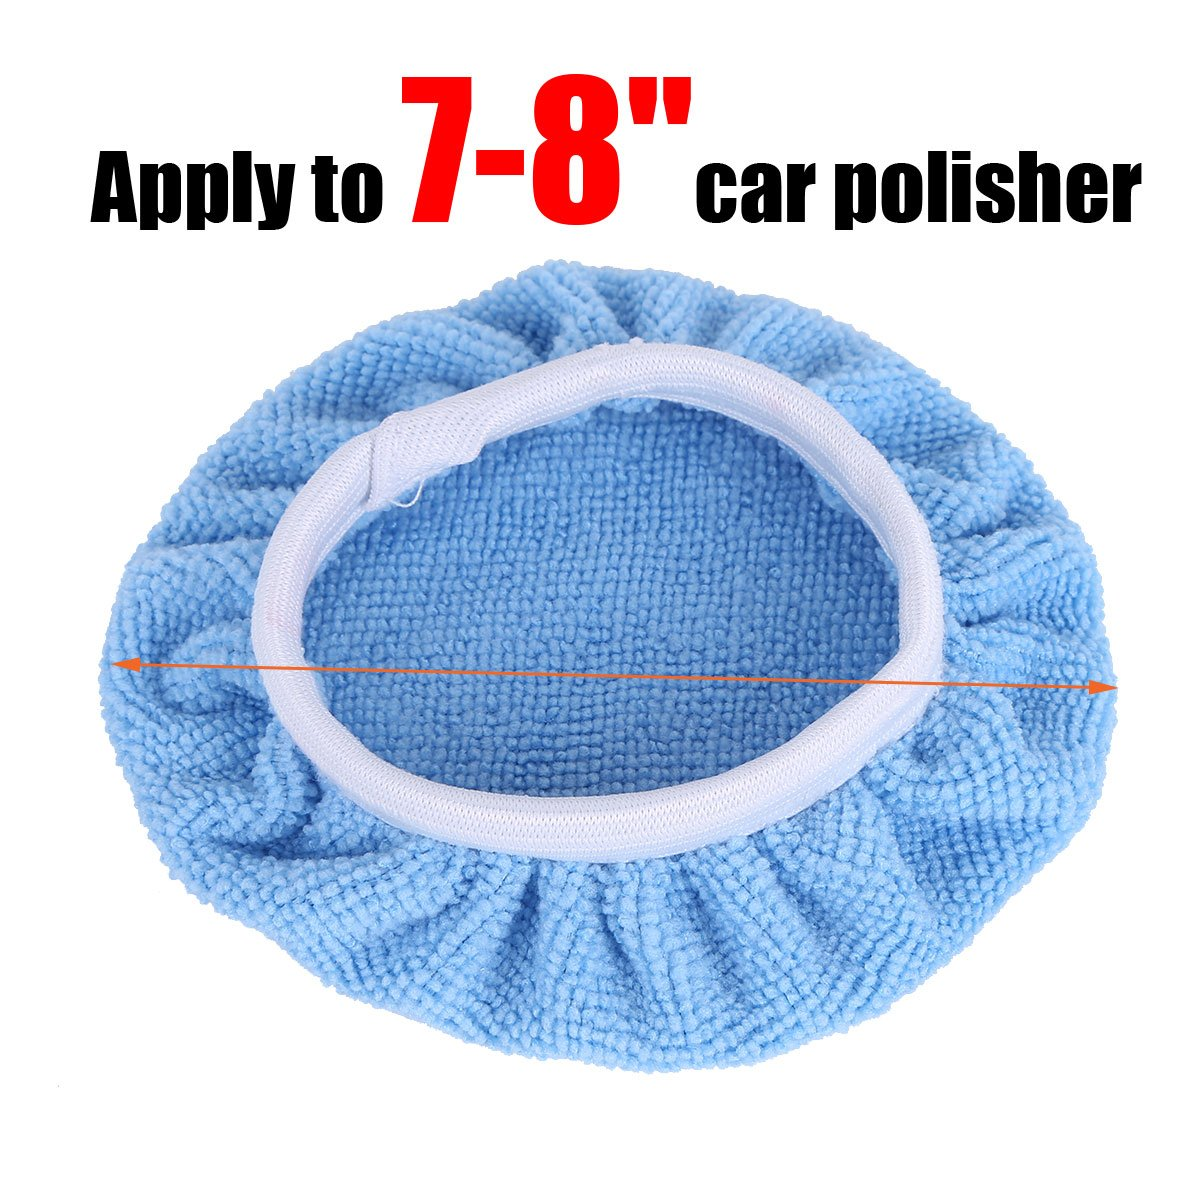 Freebily 5 Pieces Soft Microfiber Auto Car Polisher Pad Waxing Polishing Bonnet Buffing Cover 5-6/7-8/9-10 Inches Blue 7-8 Inches by Freebily (Image #2)